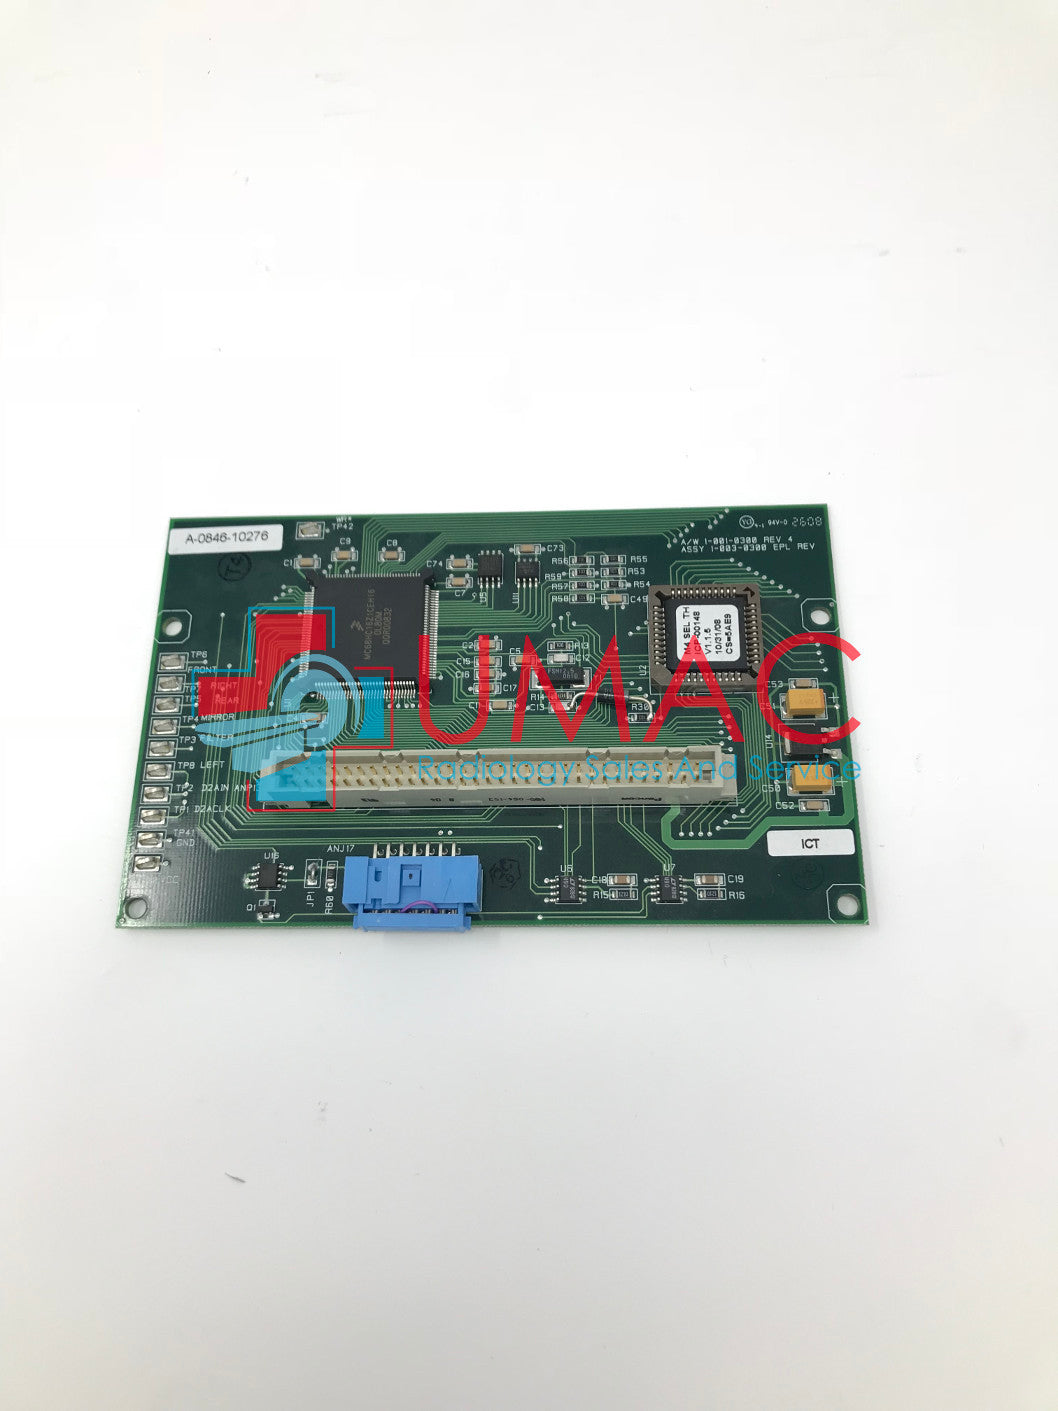 Hologic Selenia Mammography 1-003-0300 Tube Head Micro-processor Board